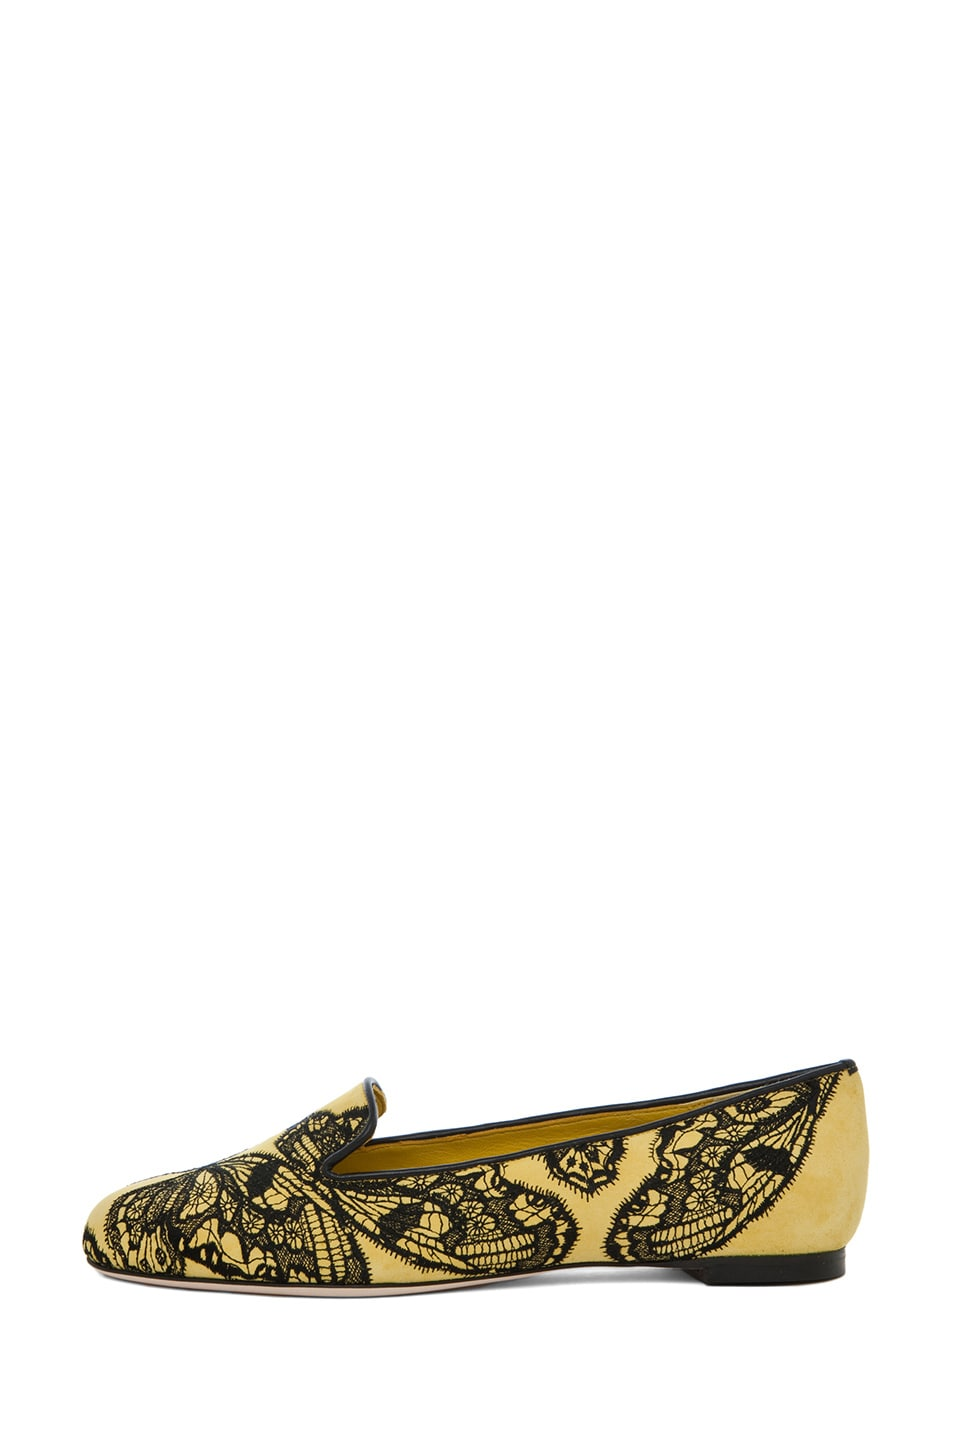 Image 1 of Alexander McQueen Butterfly Print Flat in Bright Yellow & Black